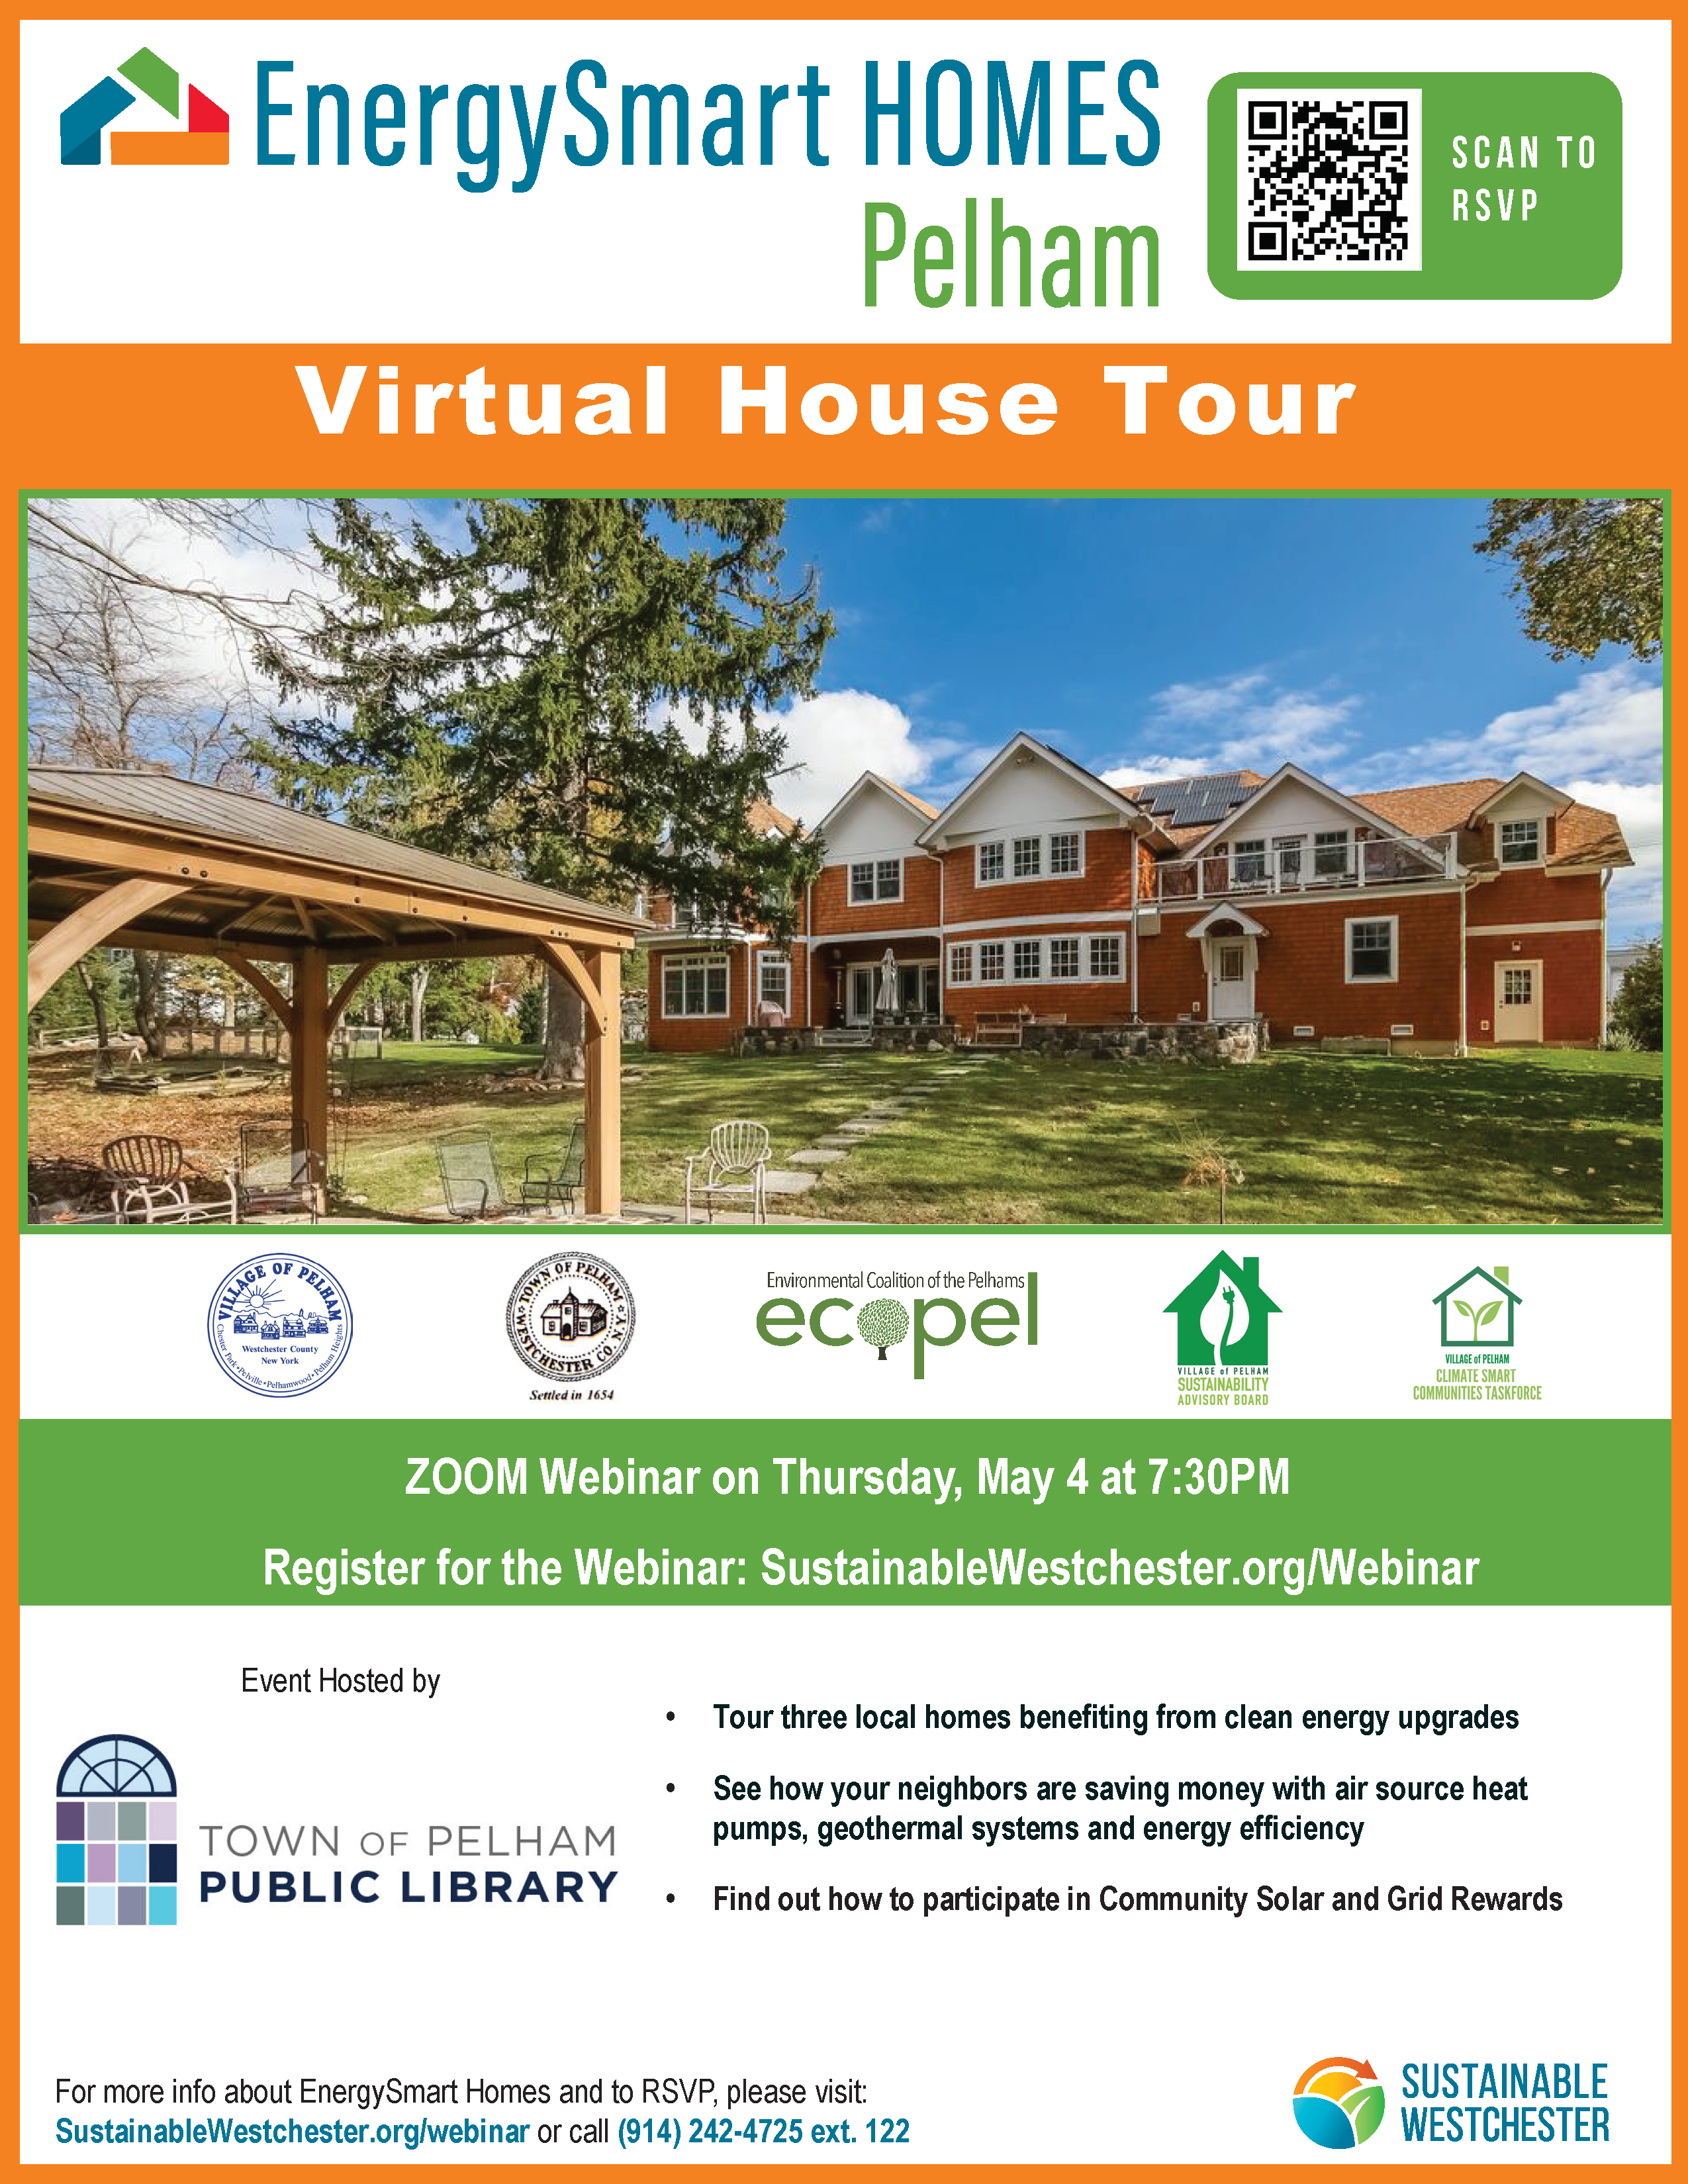 May 4th, 7:30-8:30 pm on Zoom Pelham Library Presents: EnergySmart Homes Virtual House Tour